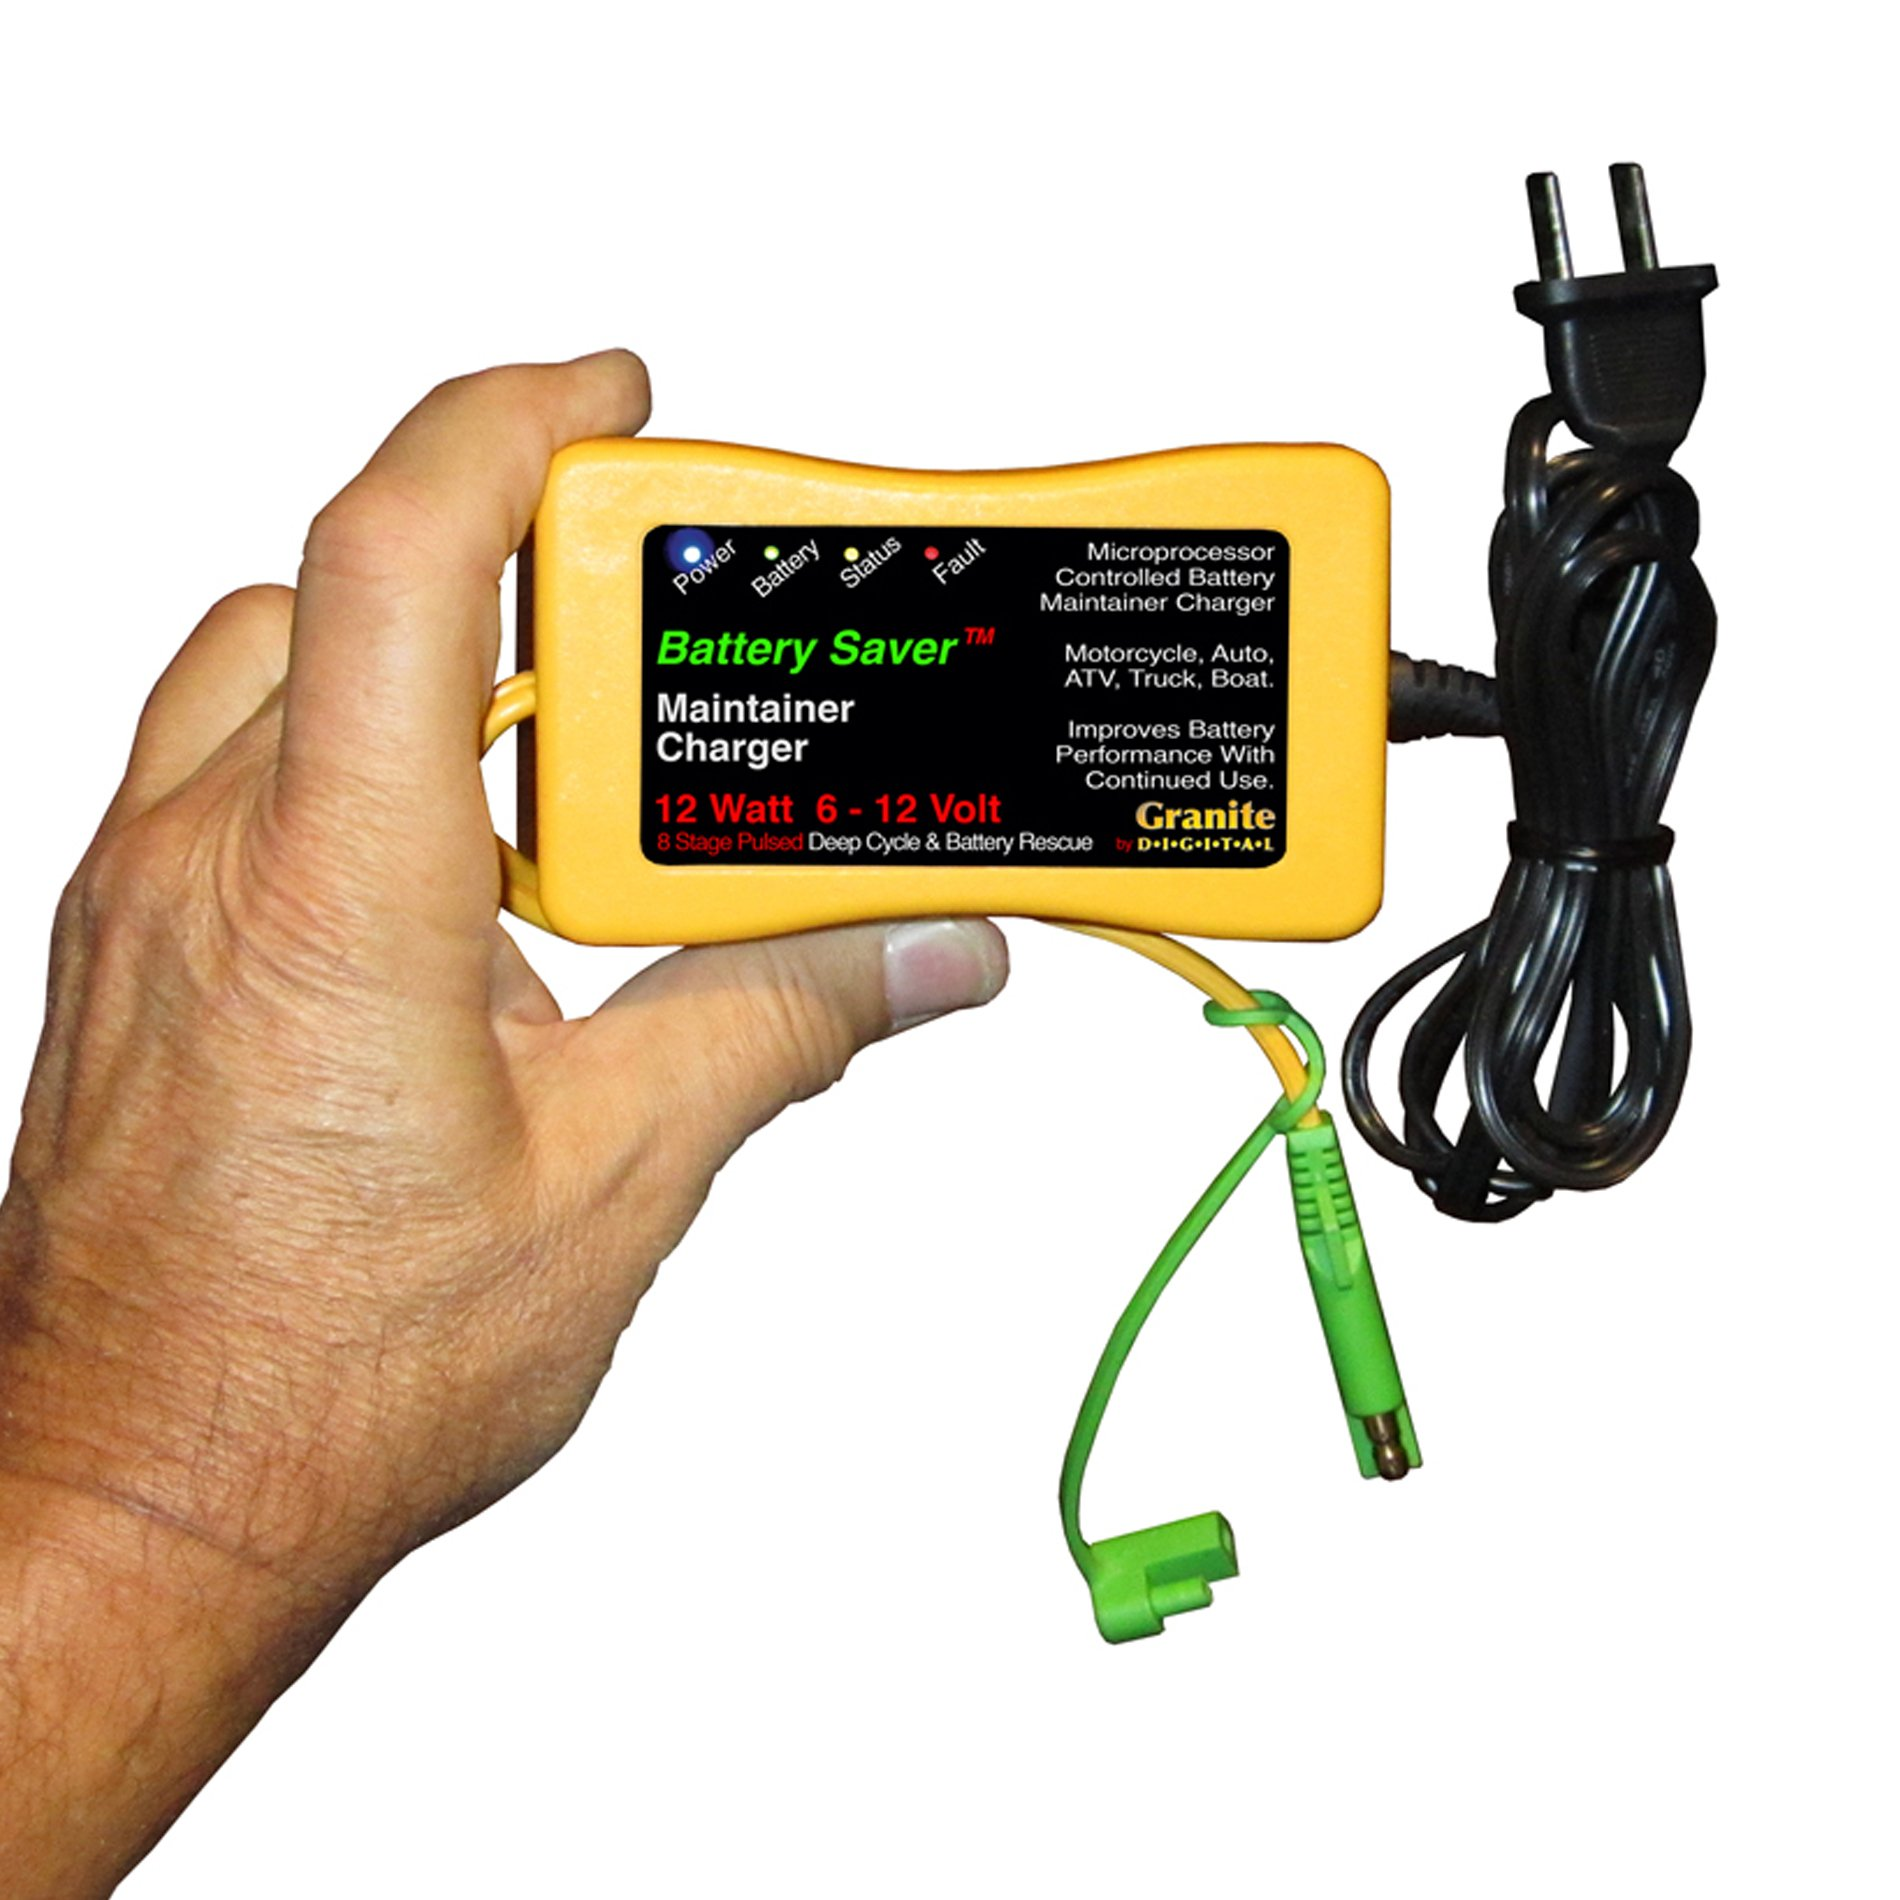 Battery Saver 6259 12W Pulse Battery Maintainer/Charger with Battery Rescue and 20' Extension Cables by Battery Saver (Image #5)